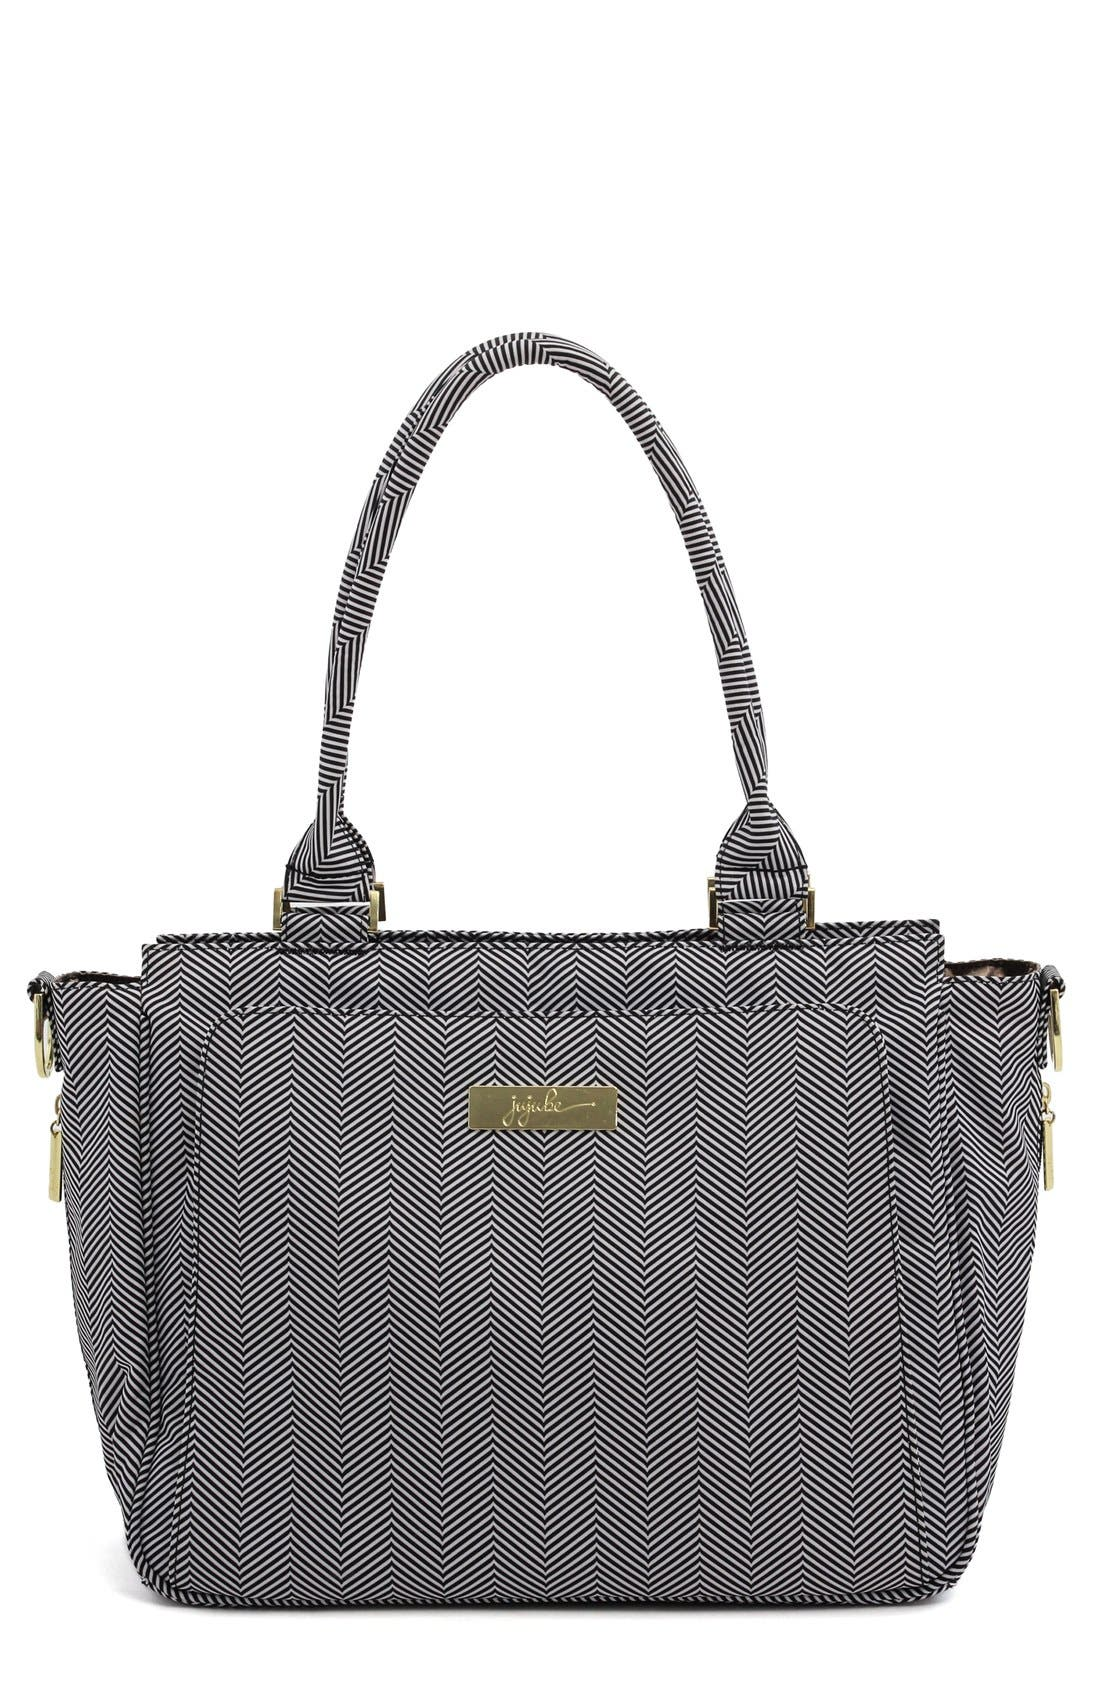 'Be Classy' Messenger Diaper Bag,                         Main,                         color, THE QUEEN OF THE NILE